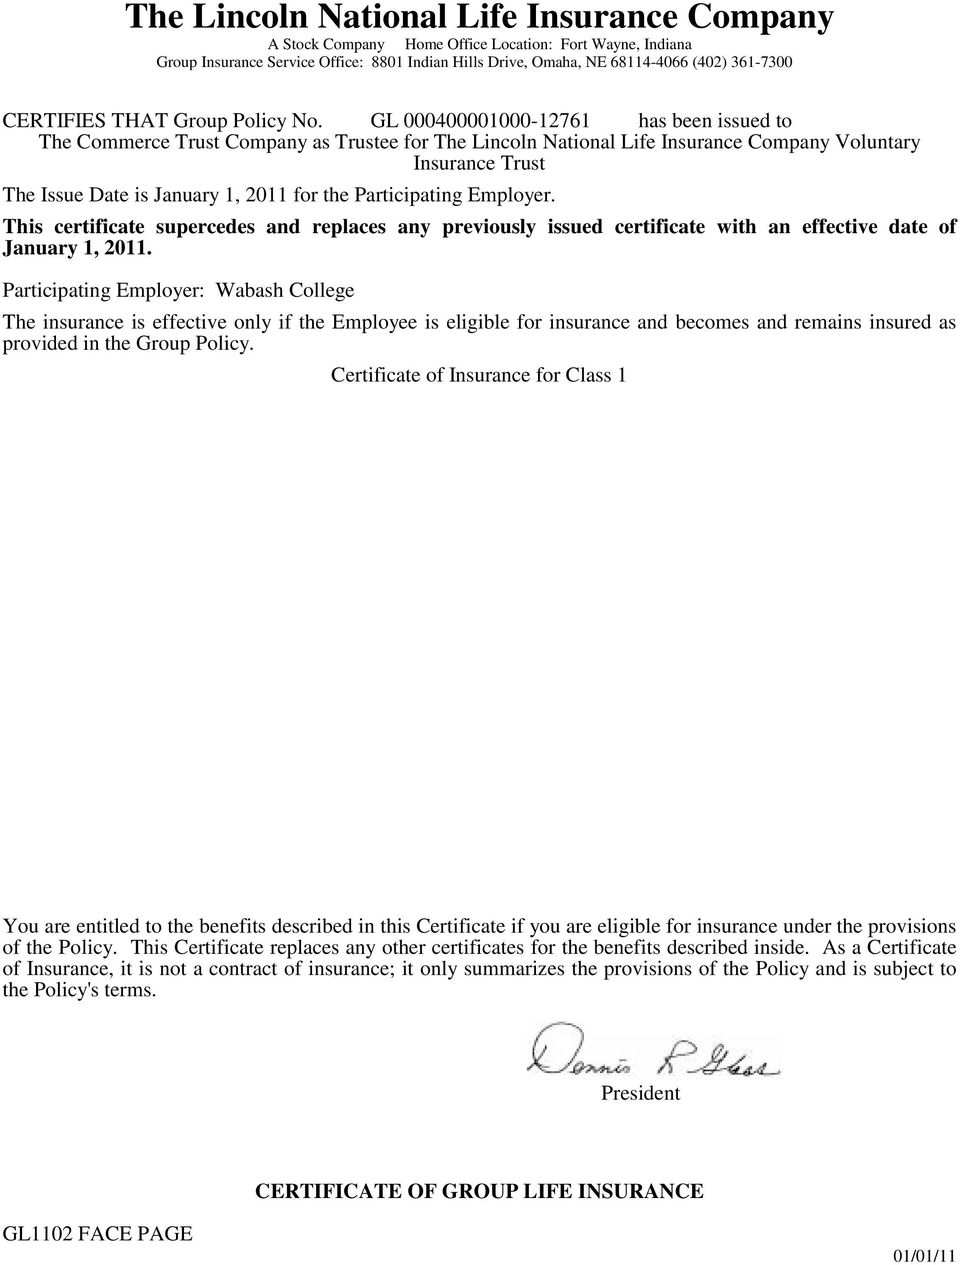 GL 000400001000-12761 has been issued to The Commerce Trust Company as Trustee for The Lincoln National Life Insurance Company Voluntary Insurance Trust The Issue Date is January 1, 2011 for the